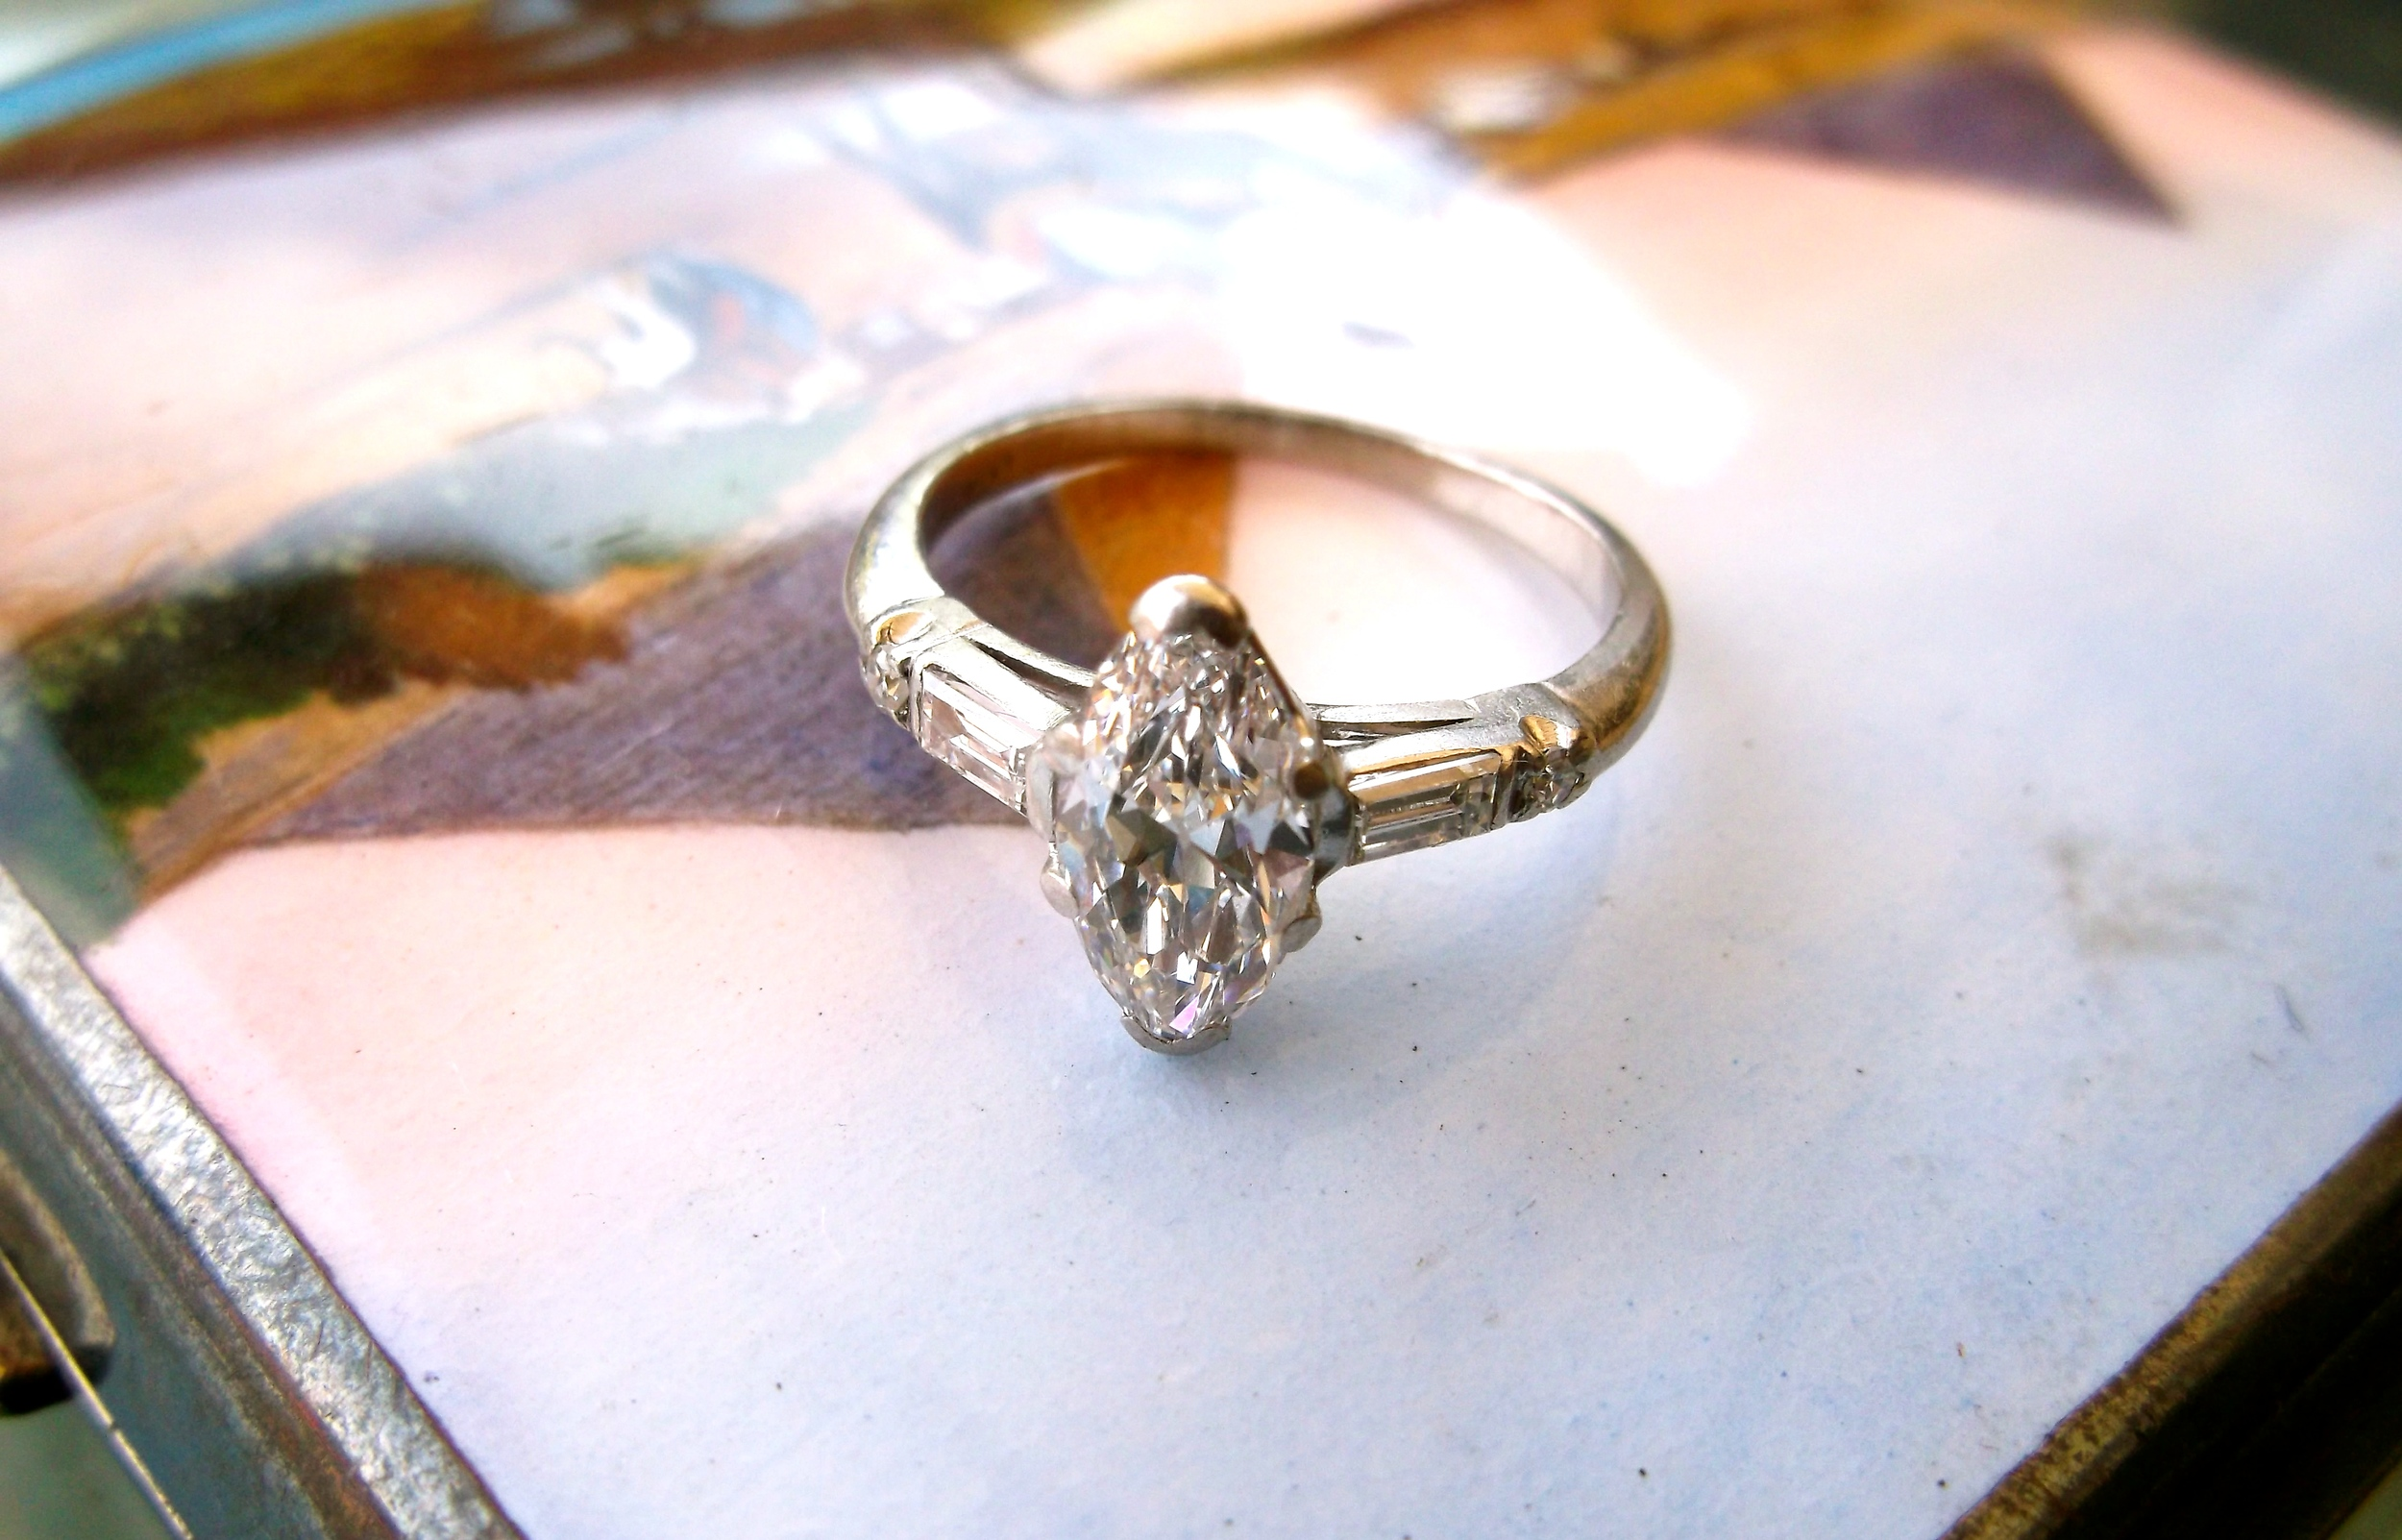 SOLD - All original 1930's 0.85 carat Old European cut marquis diamond set in platinum with baguette and round diamond detail on either side.